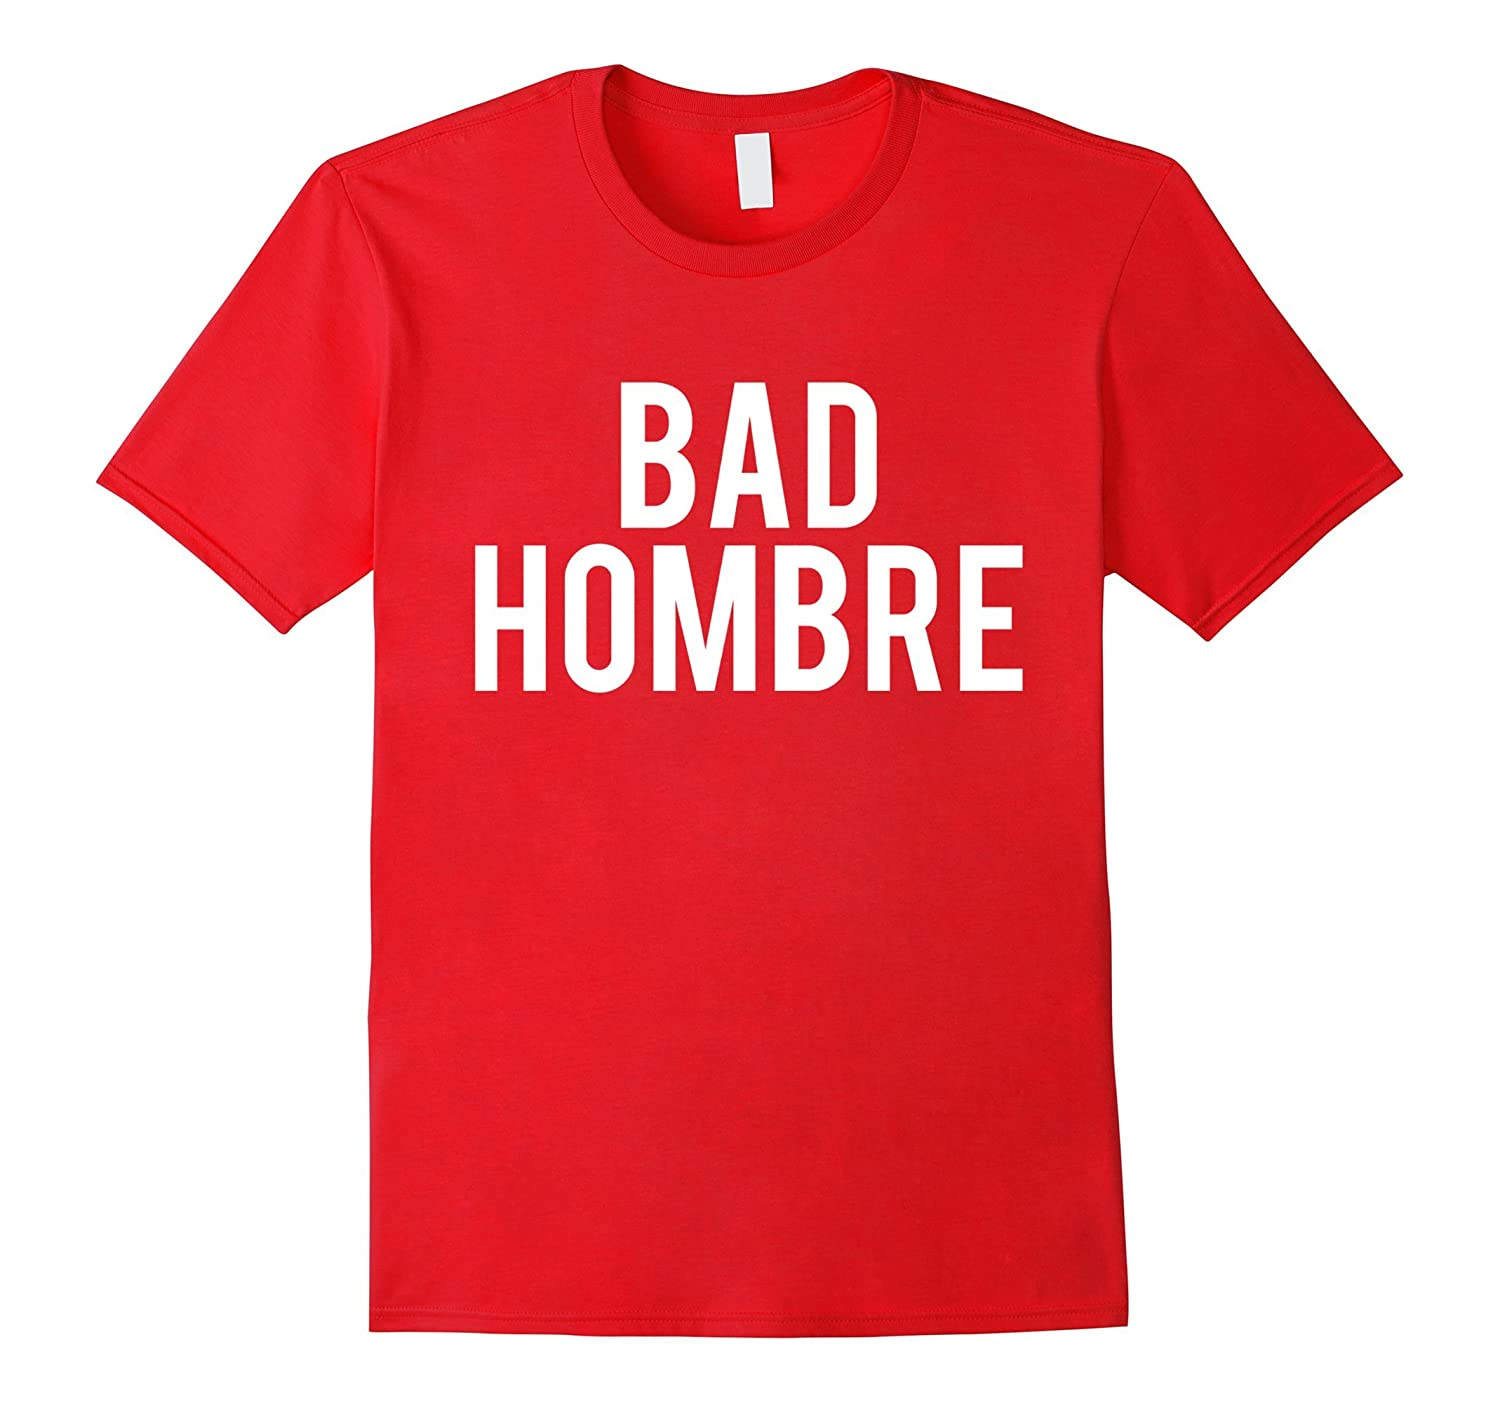 Funny Donald Trump Political Debate Bad Hombre T-shirt